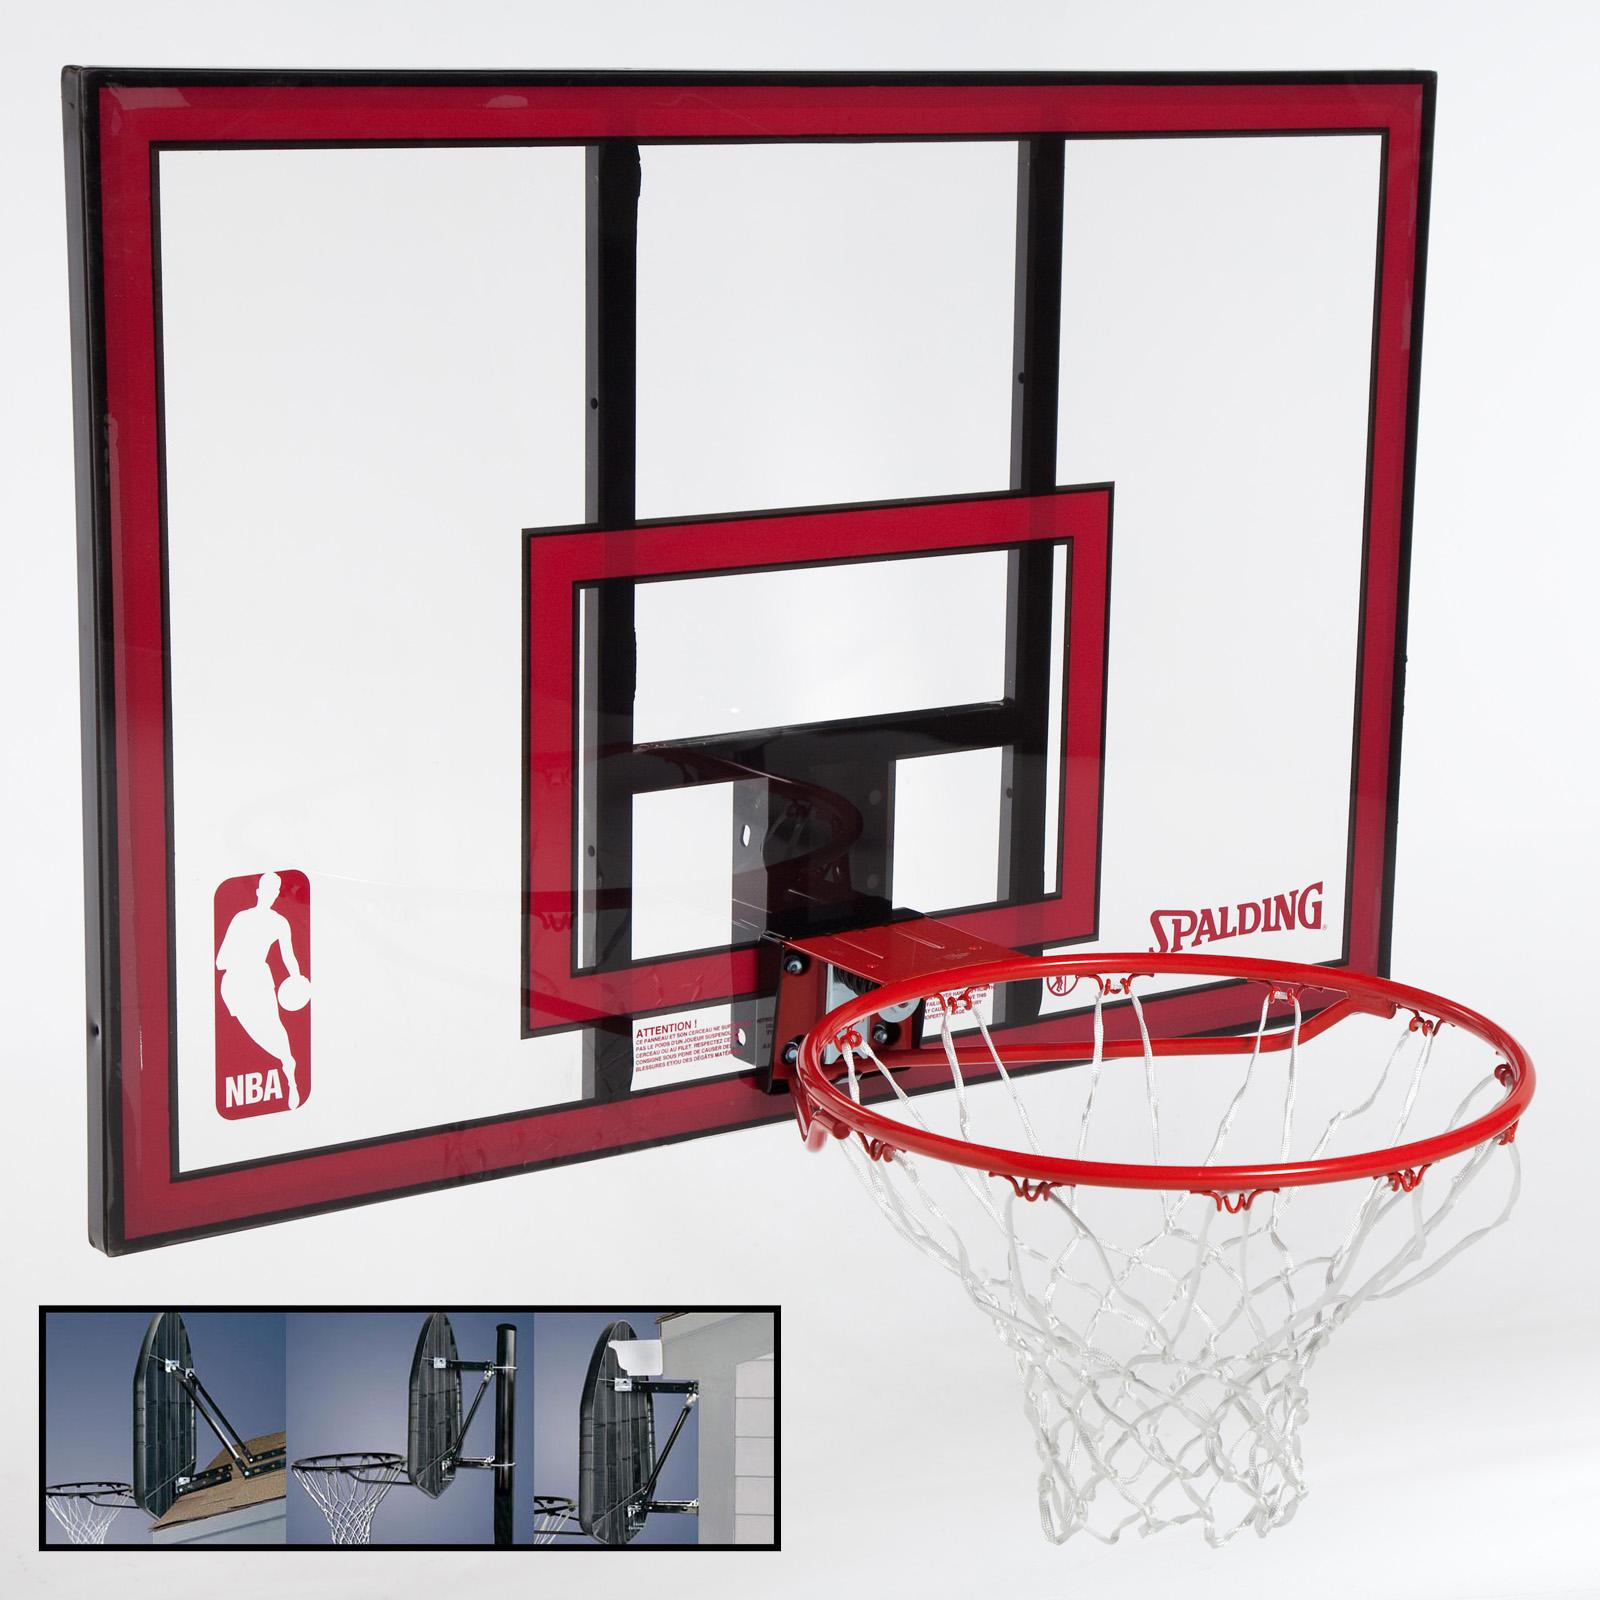 Spalding 44-Inch Polycarbonate Backboard Combo with Mounting Bracket - SPN149-1